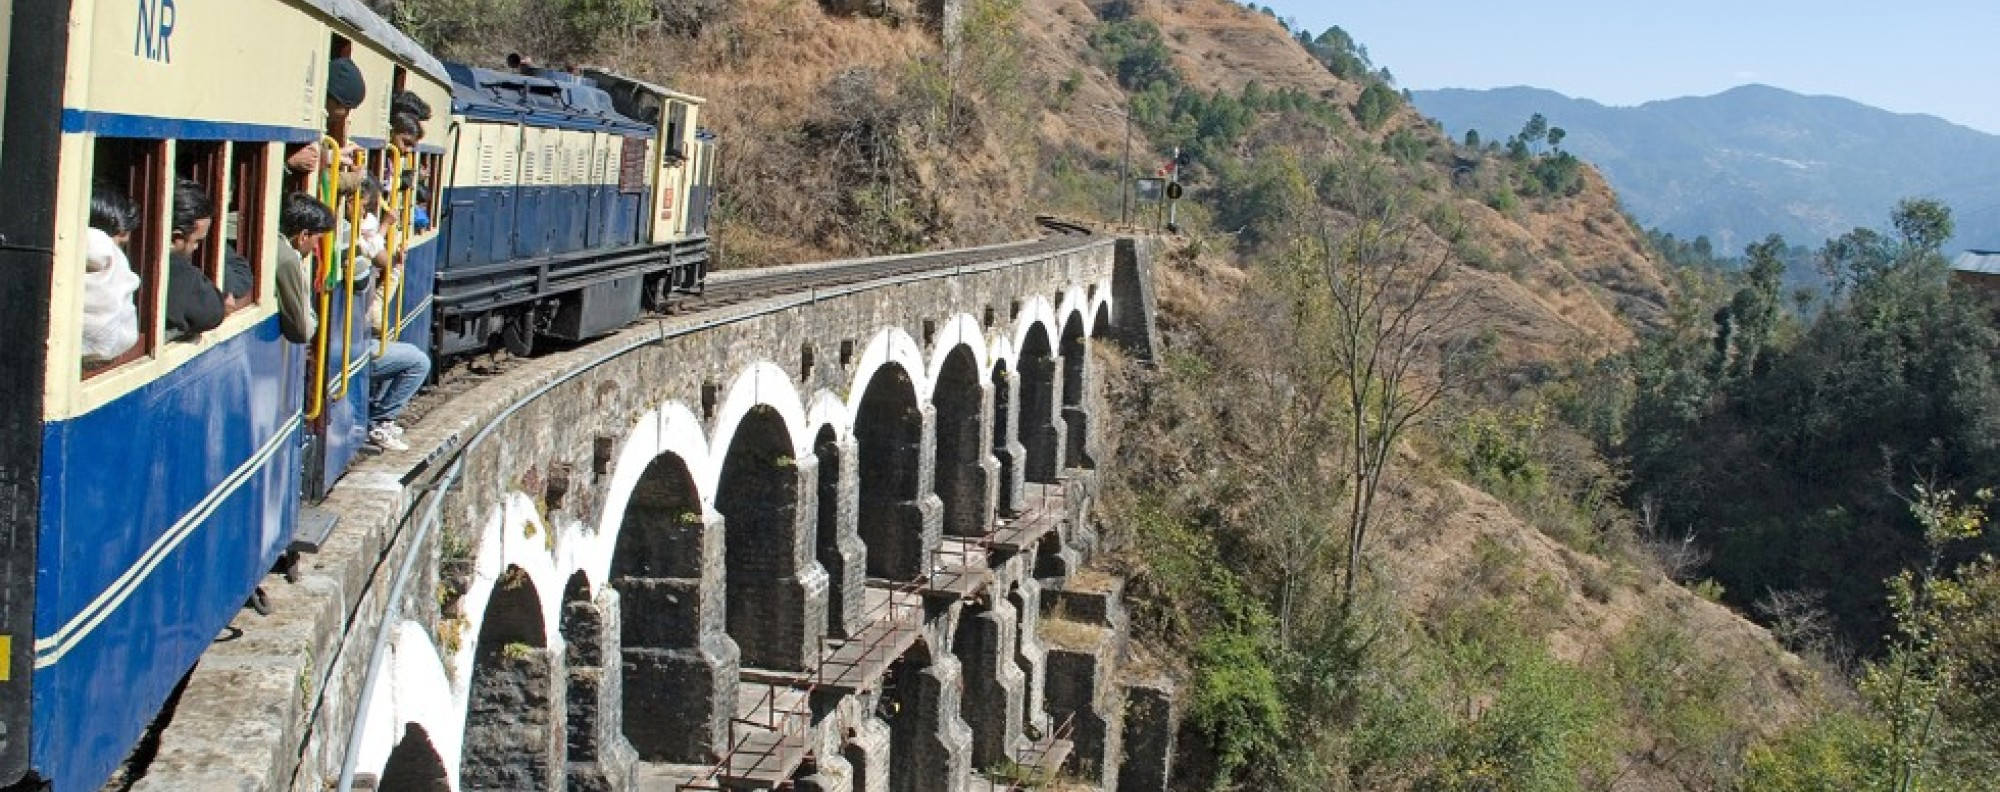 A narrow-gauge railway on the Kalka-Shimla line in India. Picture: Alamy